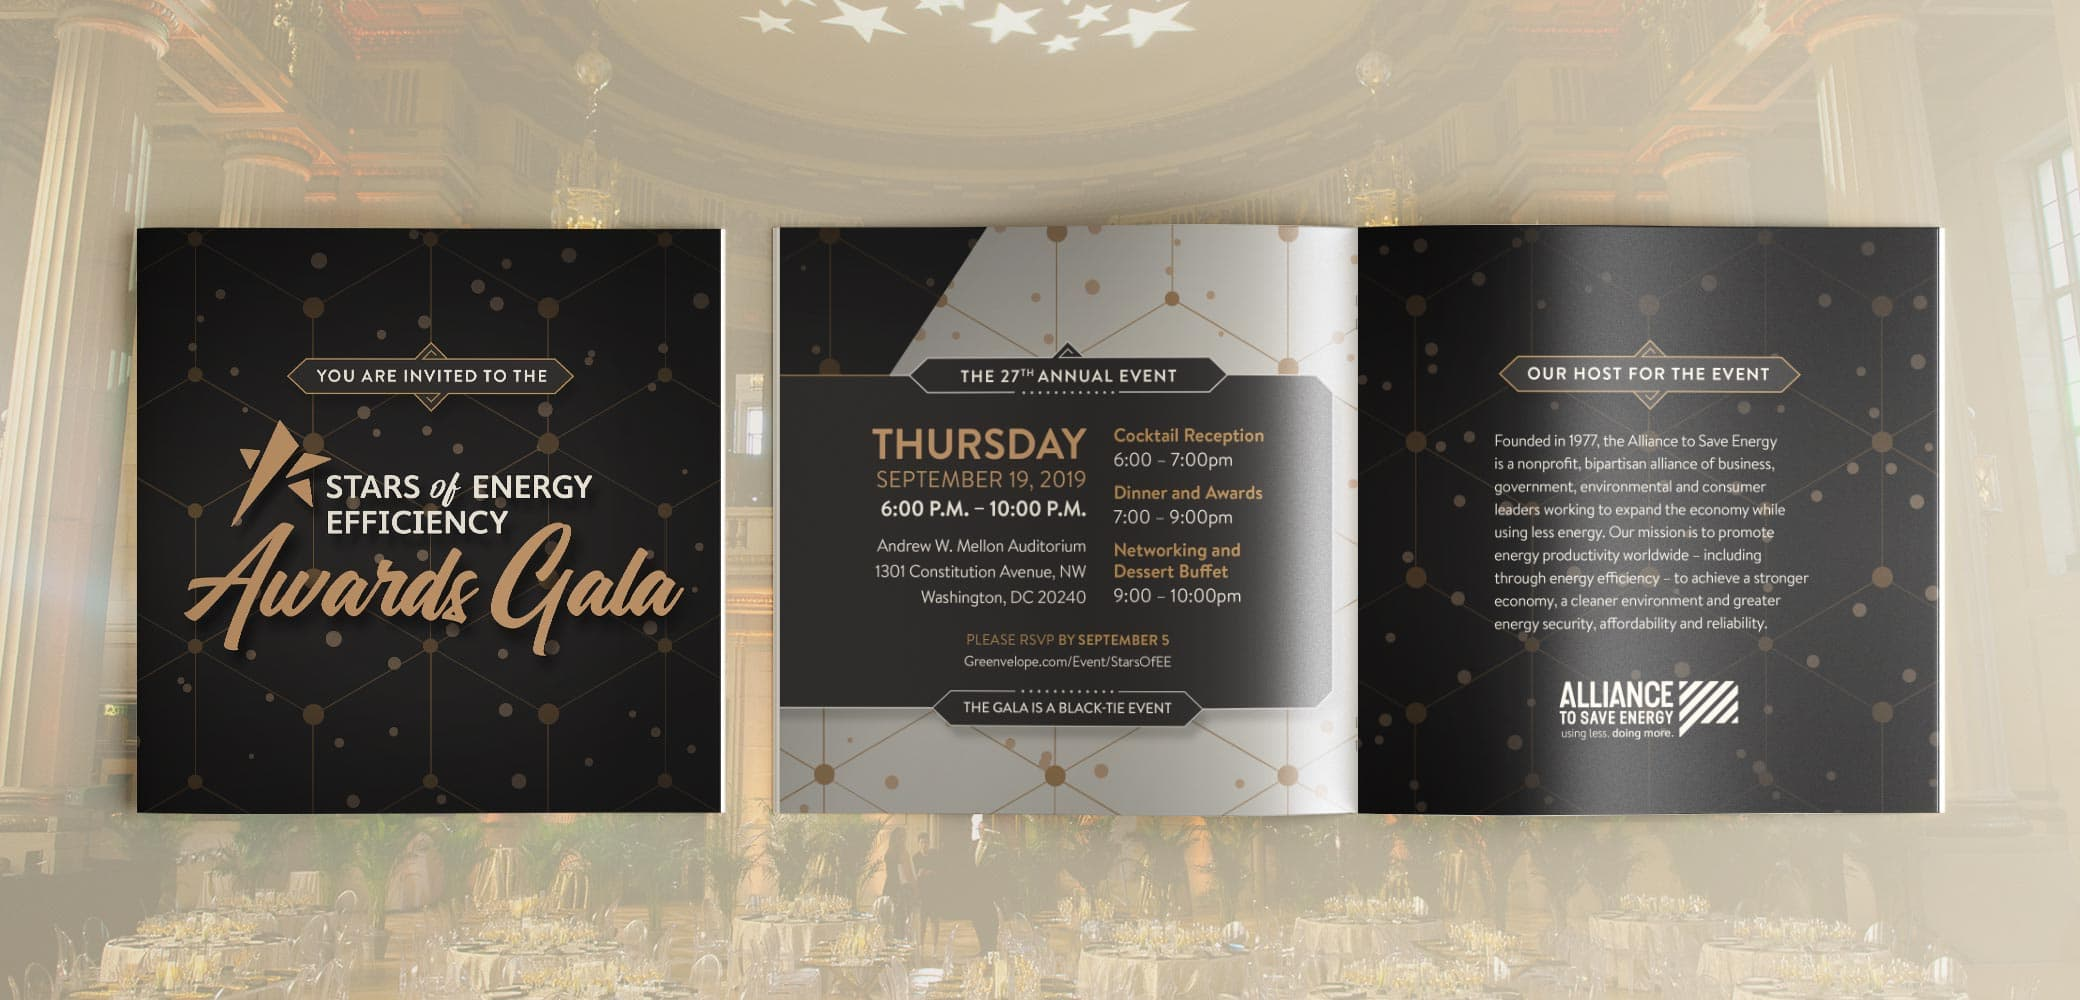 Alliance to Save Energy's Stars of Energy Efficiency Gala Invite design by Red Chalk Studios